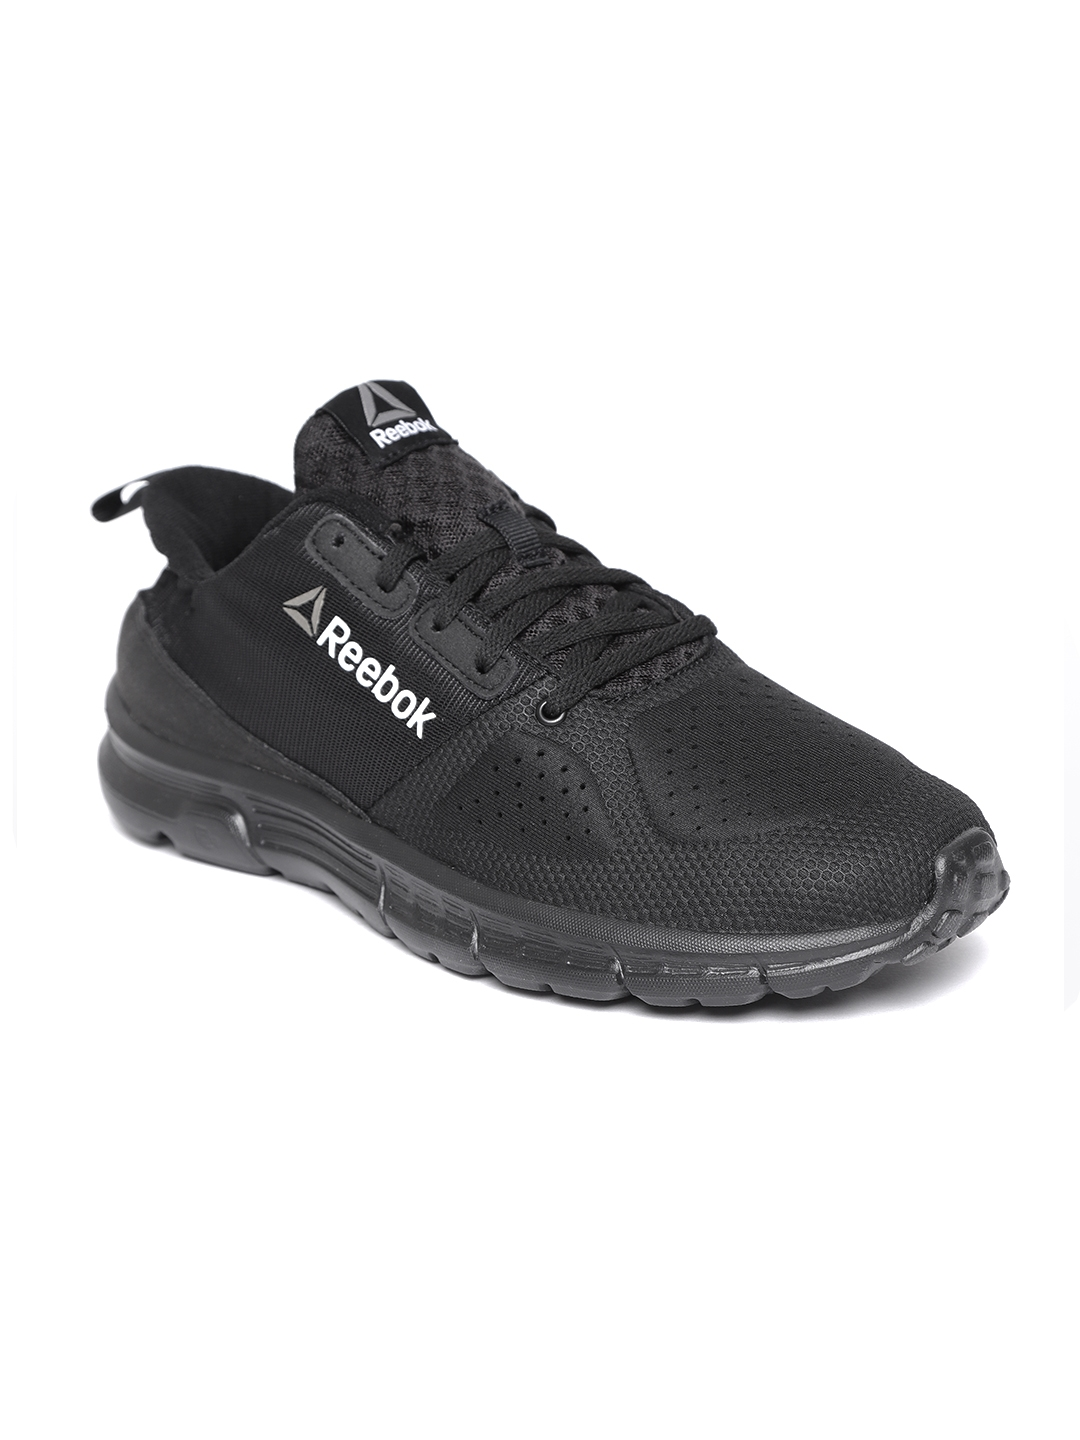 c0d9fd451 Buy Reebok Men Black Aim MT Running Shoes - Sports Shoes for Men ...